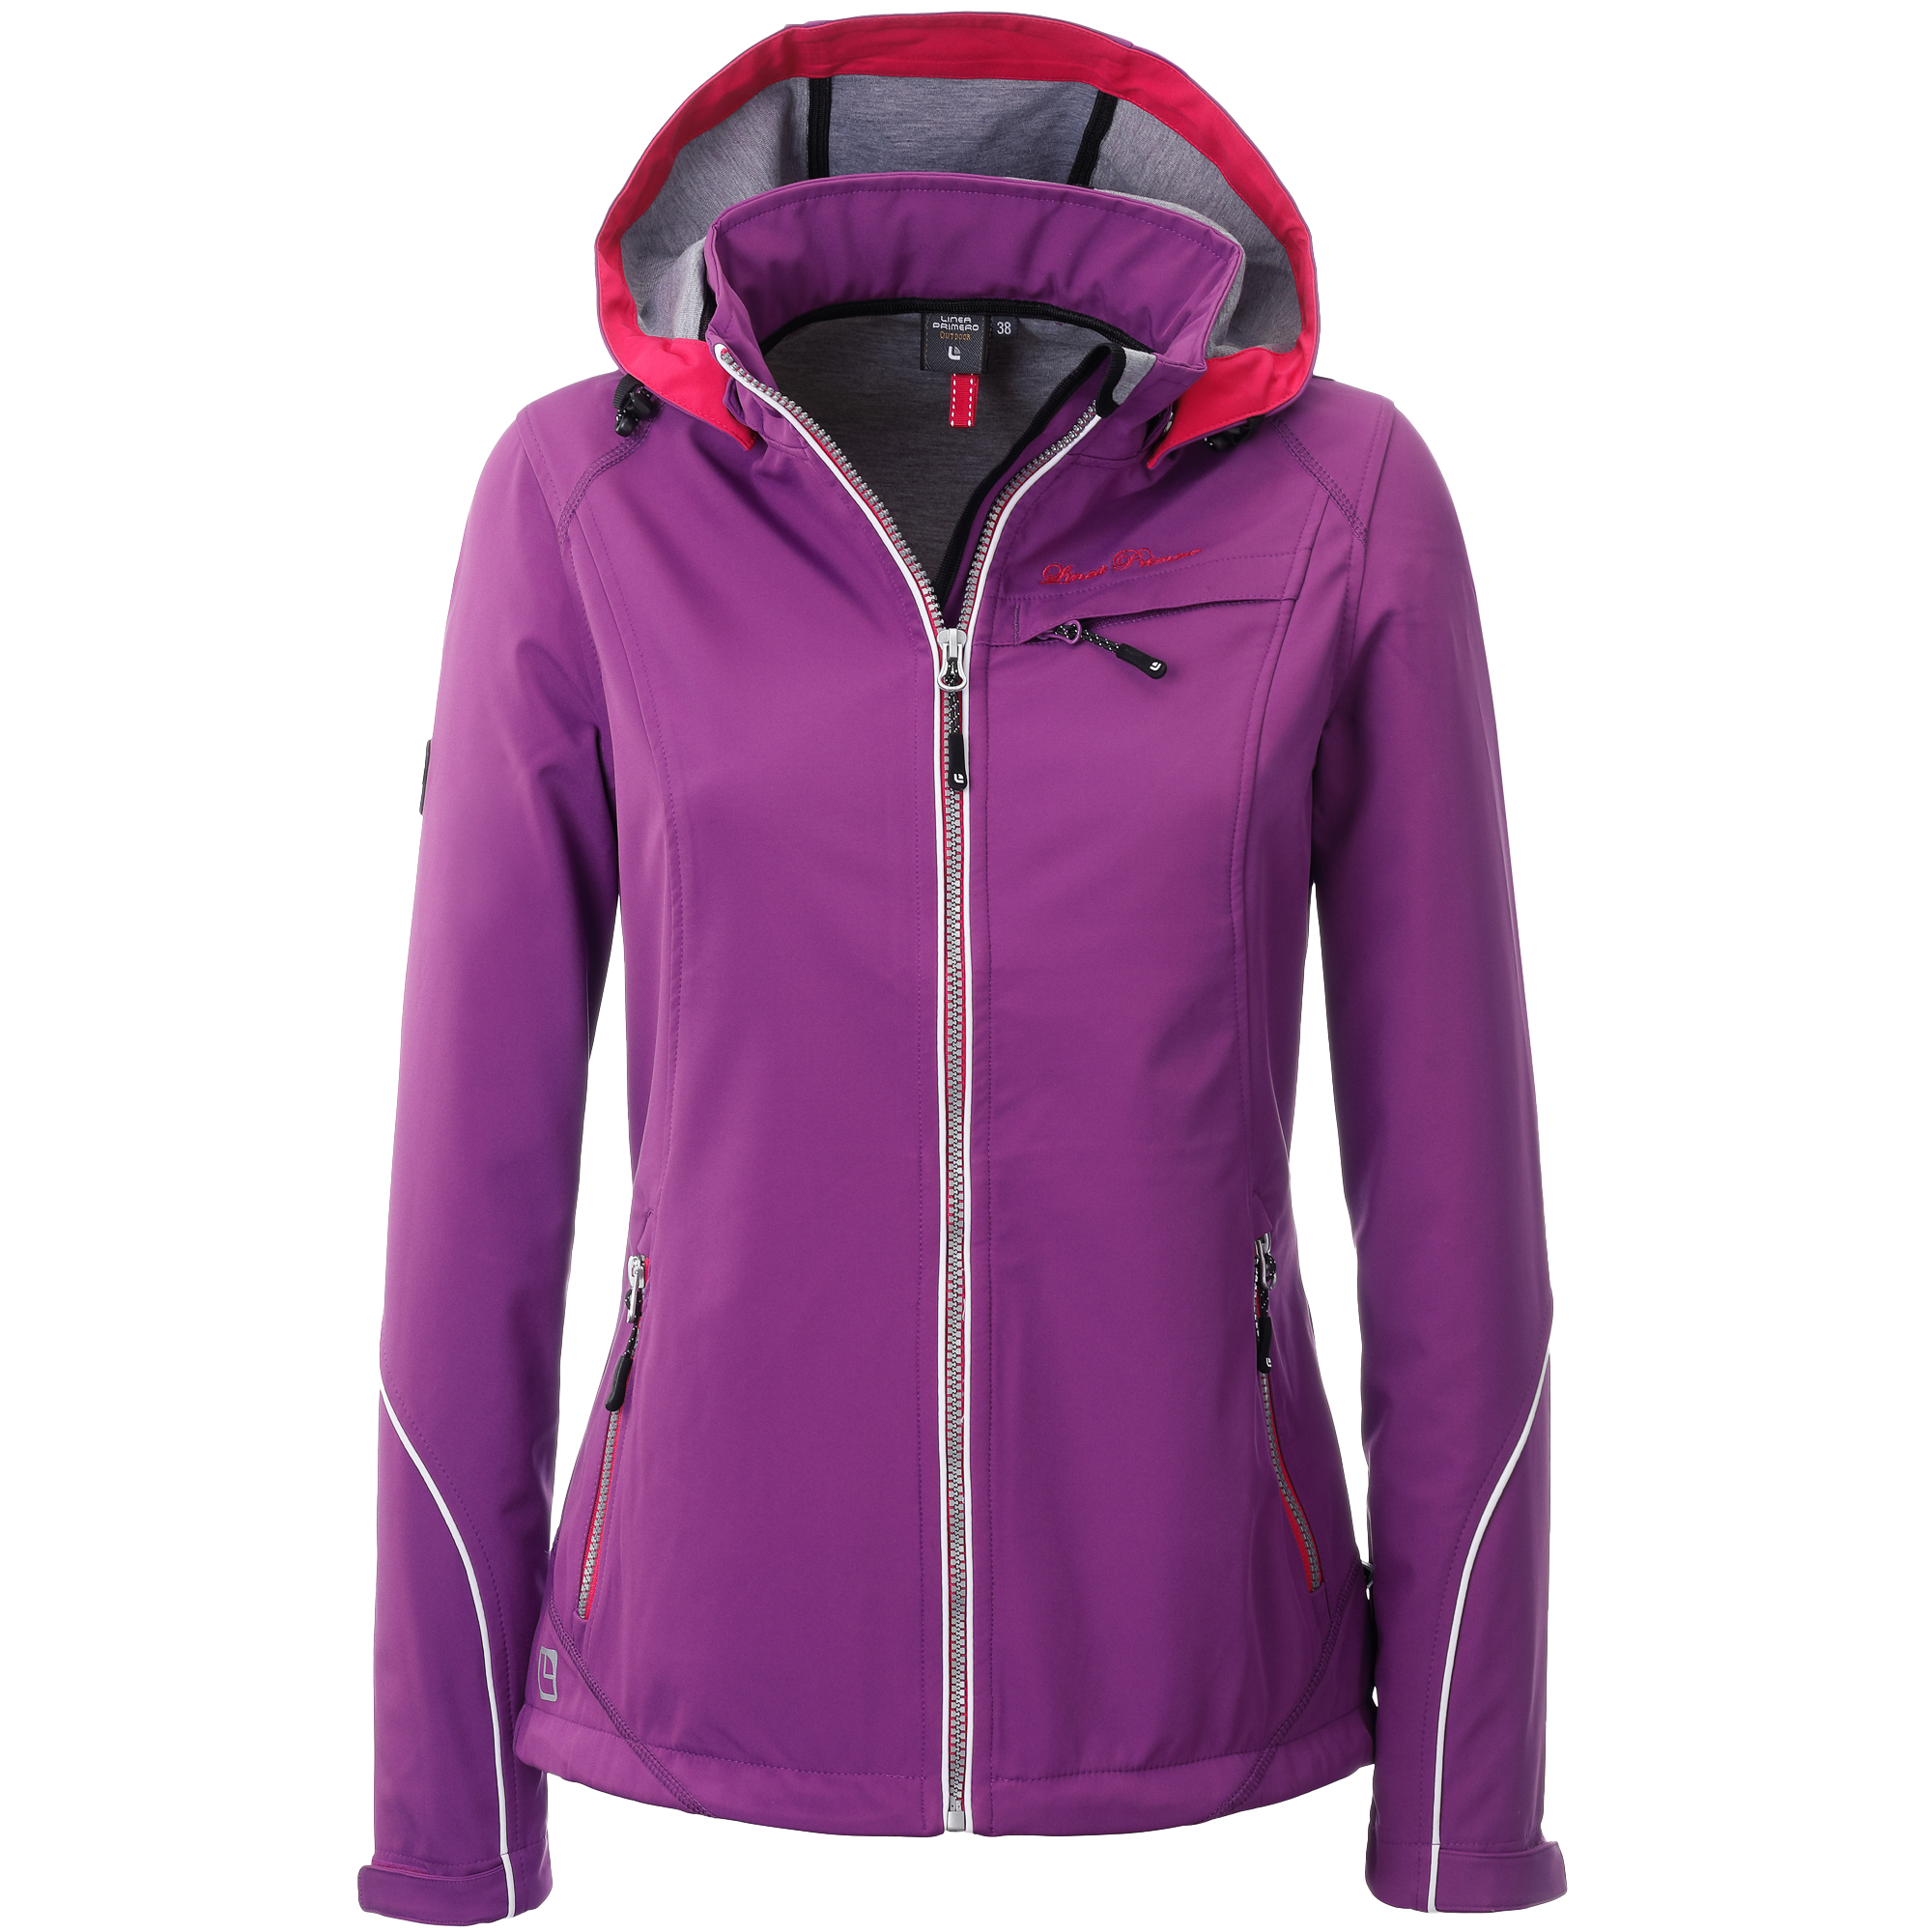 Softshelljacke Damen LINEA PRIMERO MECATINA PEAK Women Farbe: sparkling grape Größe: 48